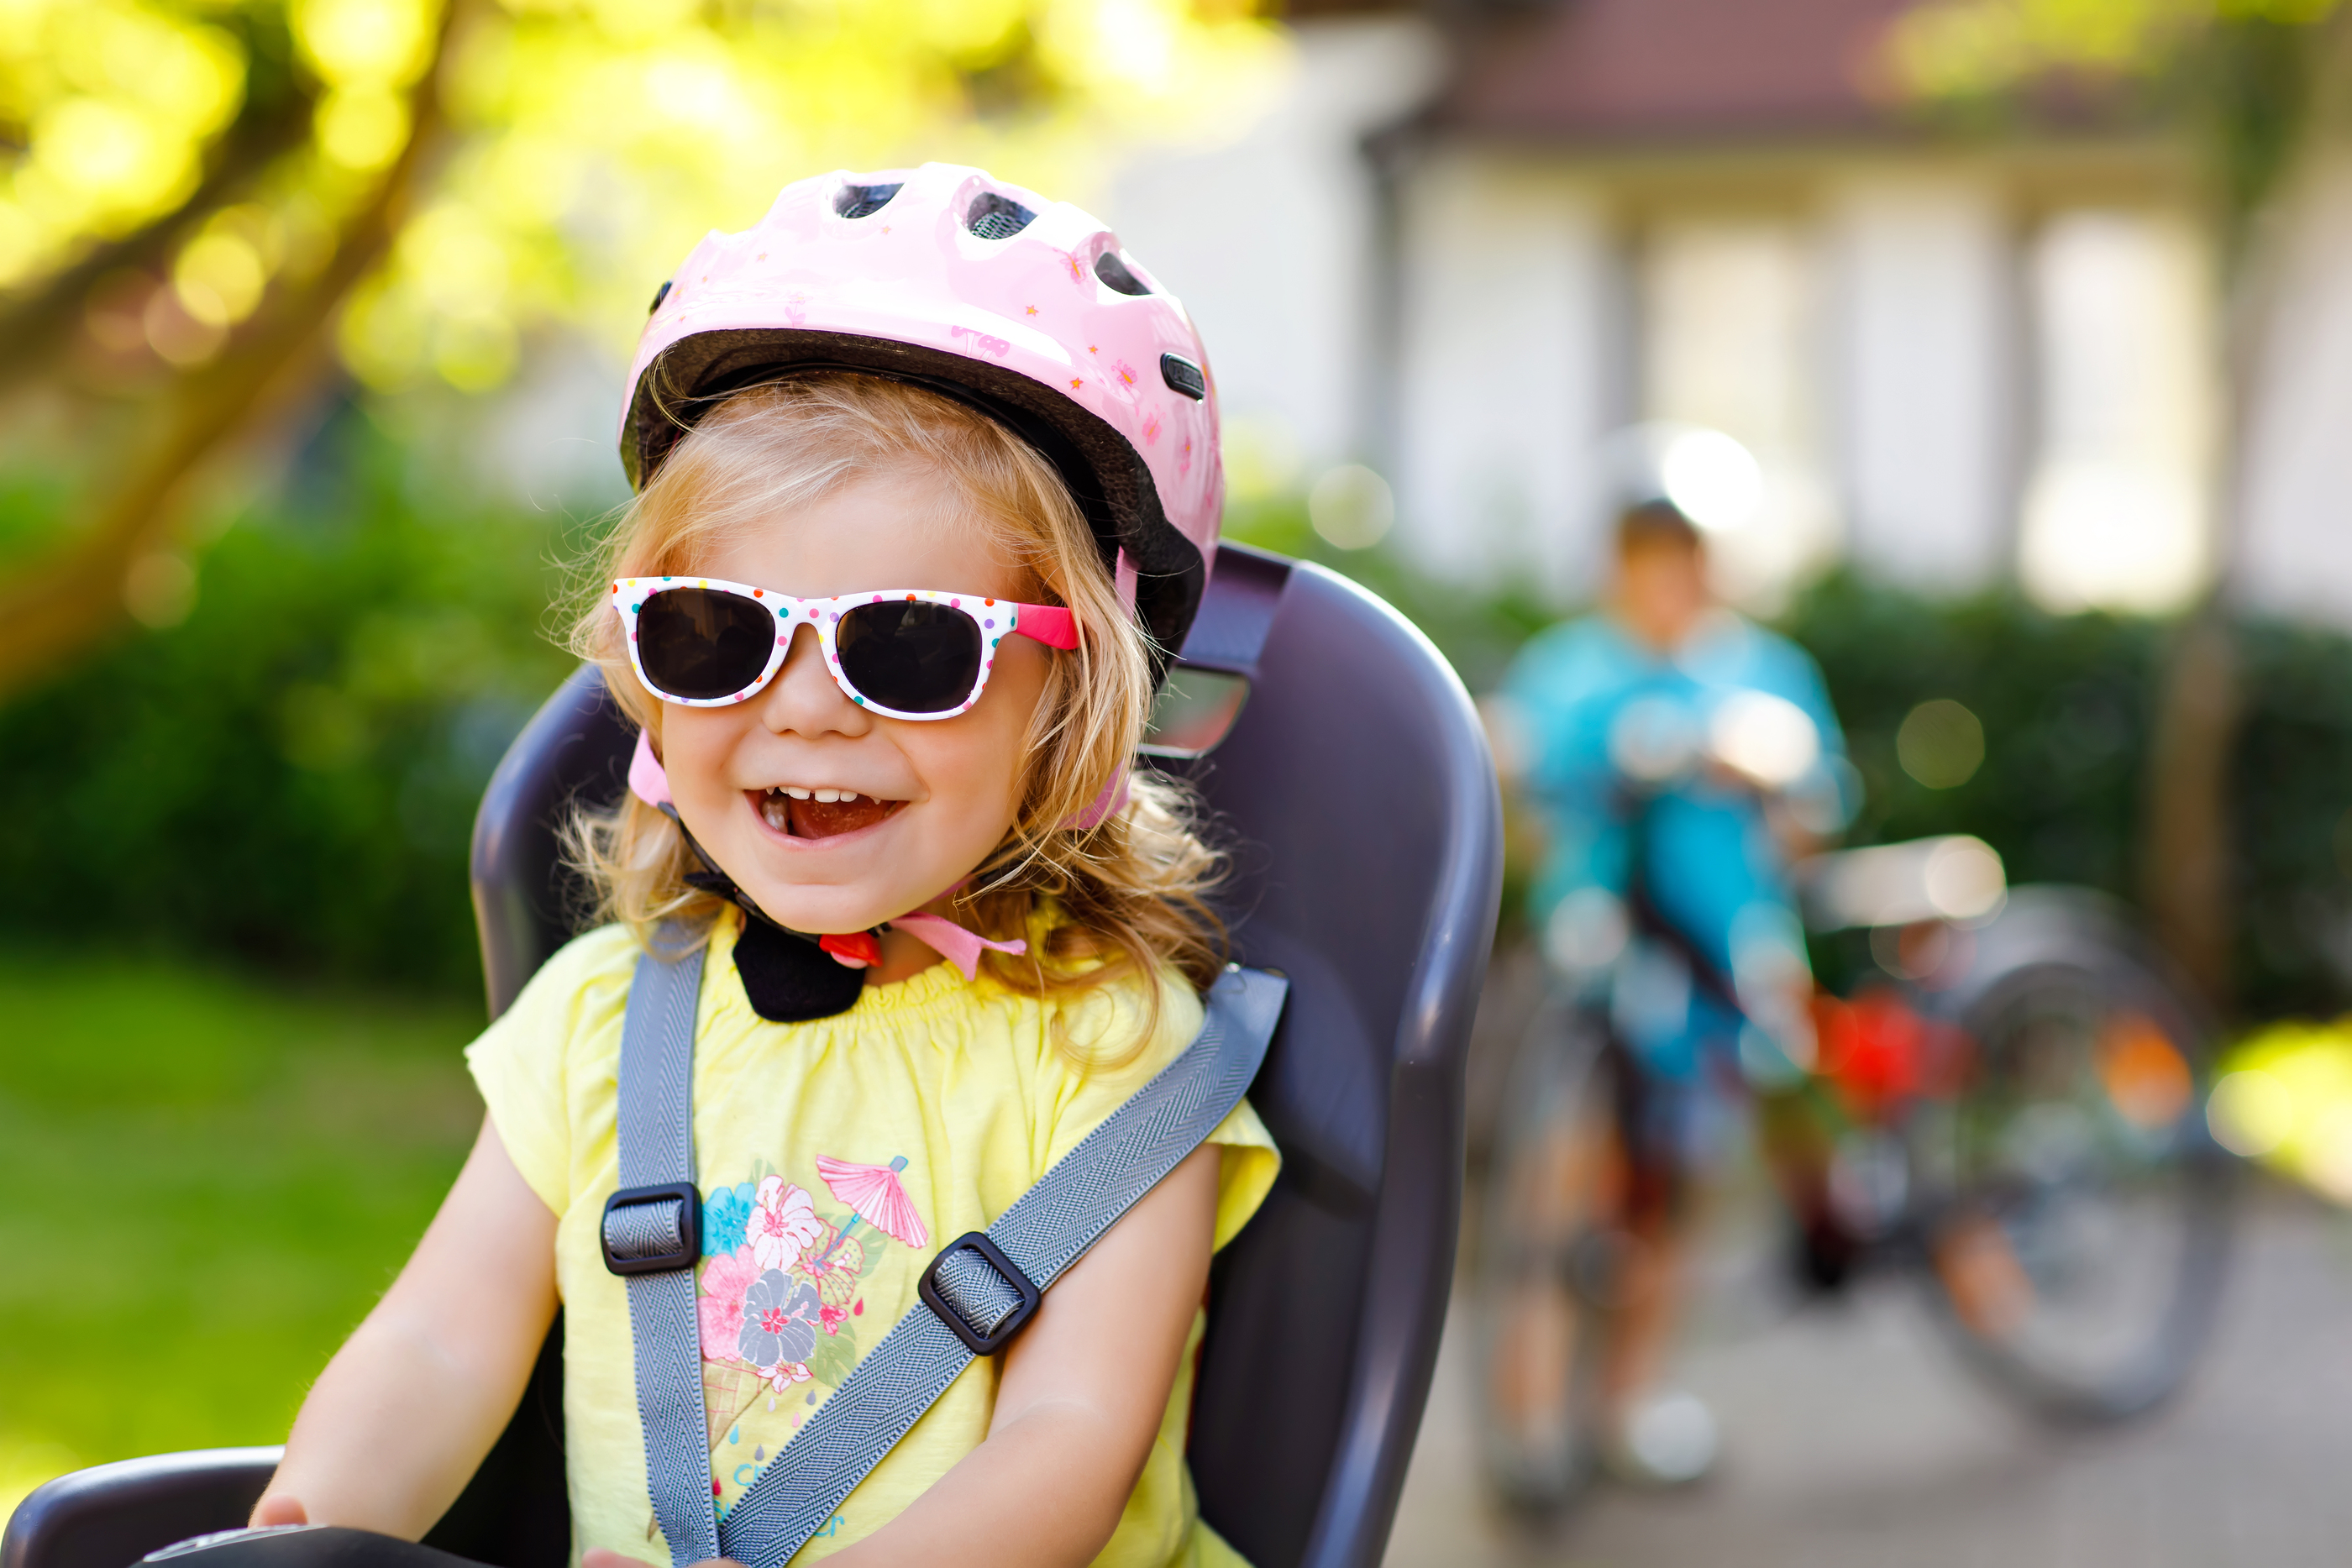 7 activities to do with kids on the last few days of summer